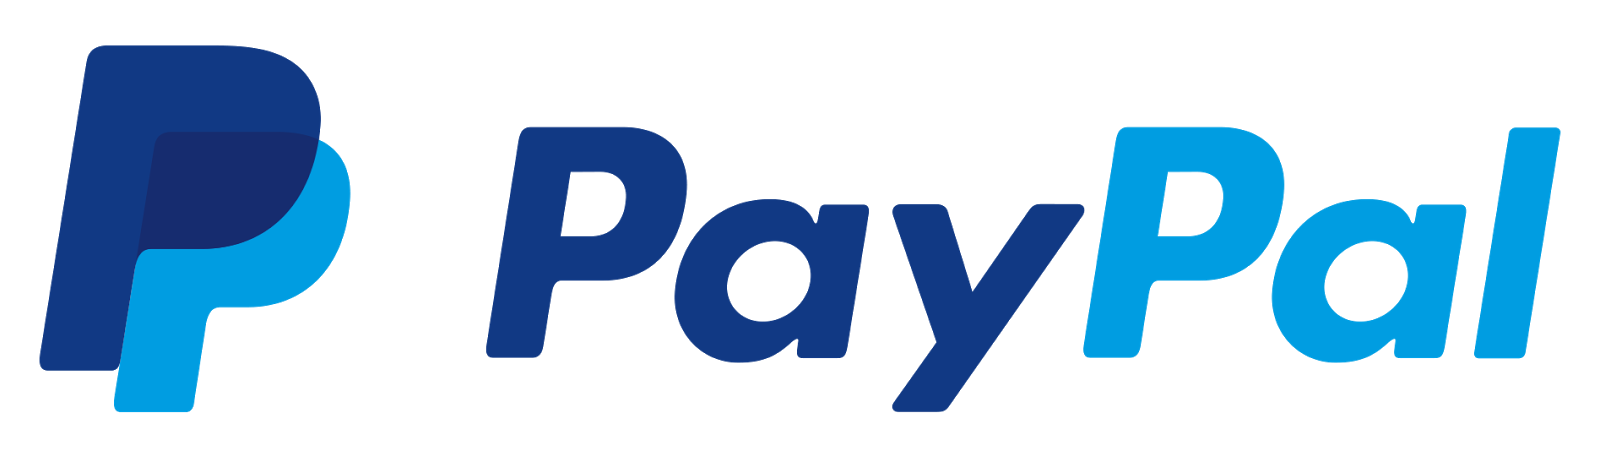 Paypal Holdings logo